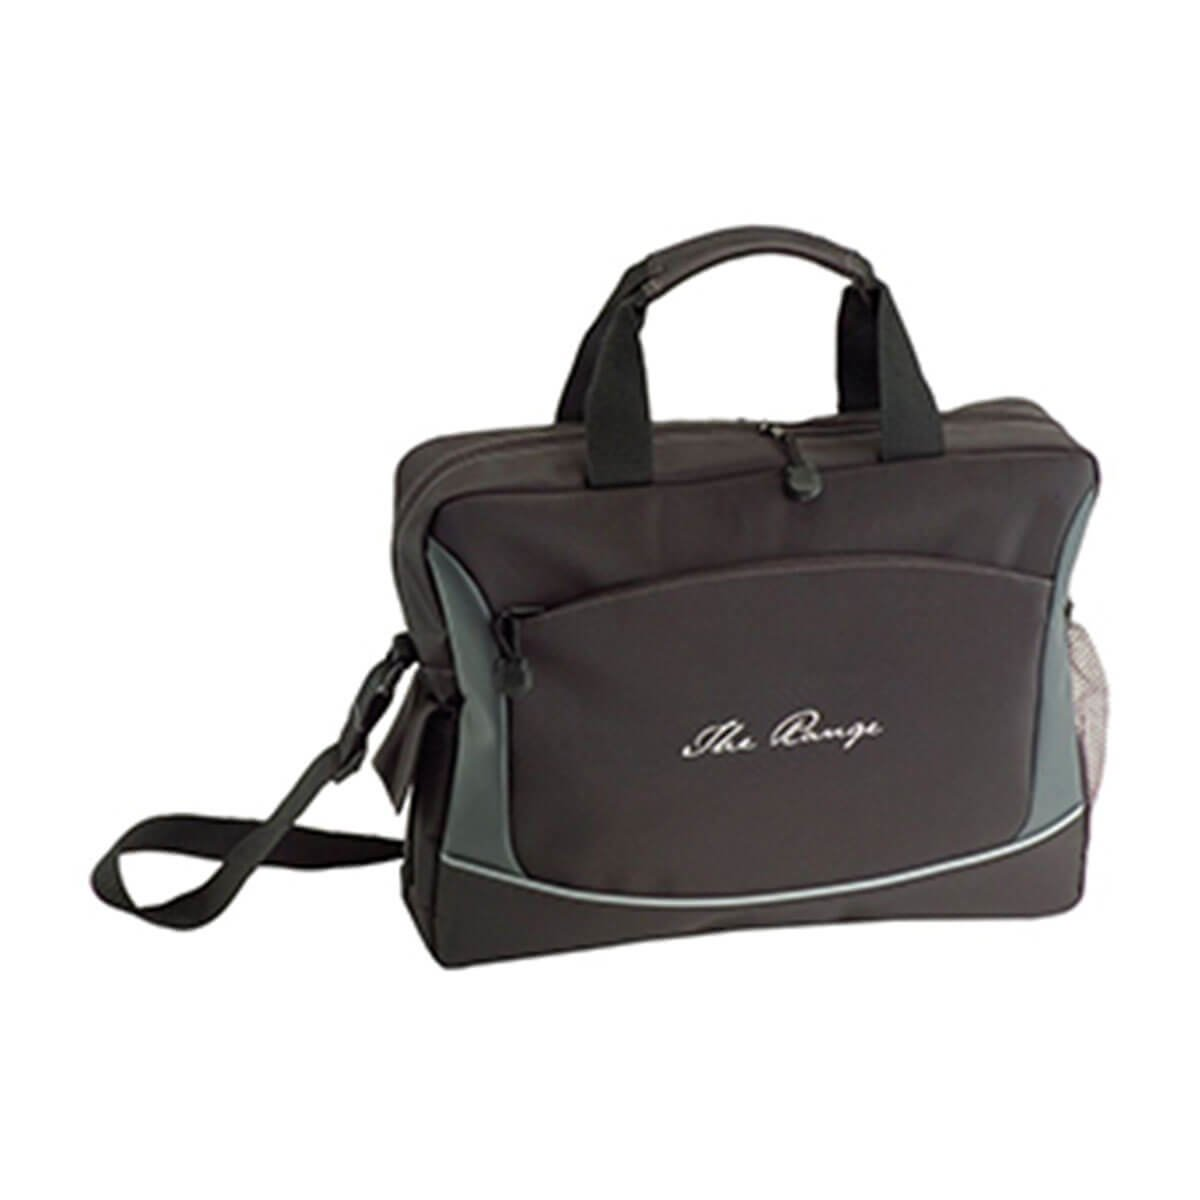 Conference Bag in Microfiber-Black with Grey Trim.